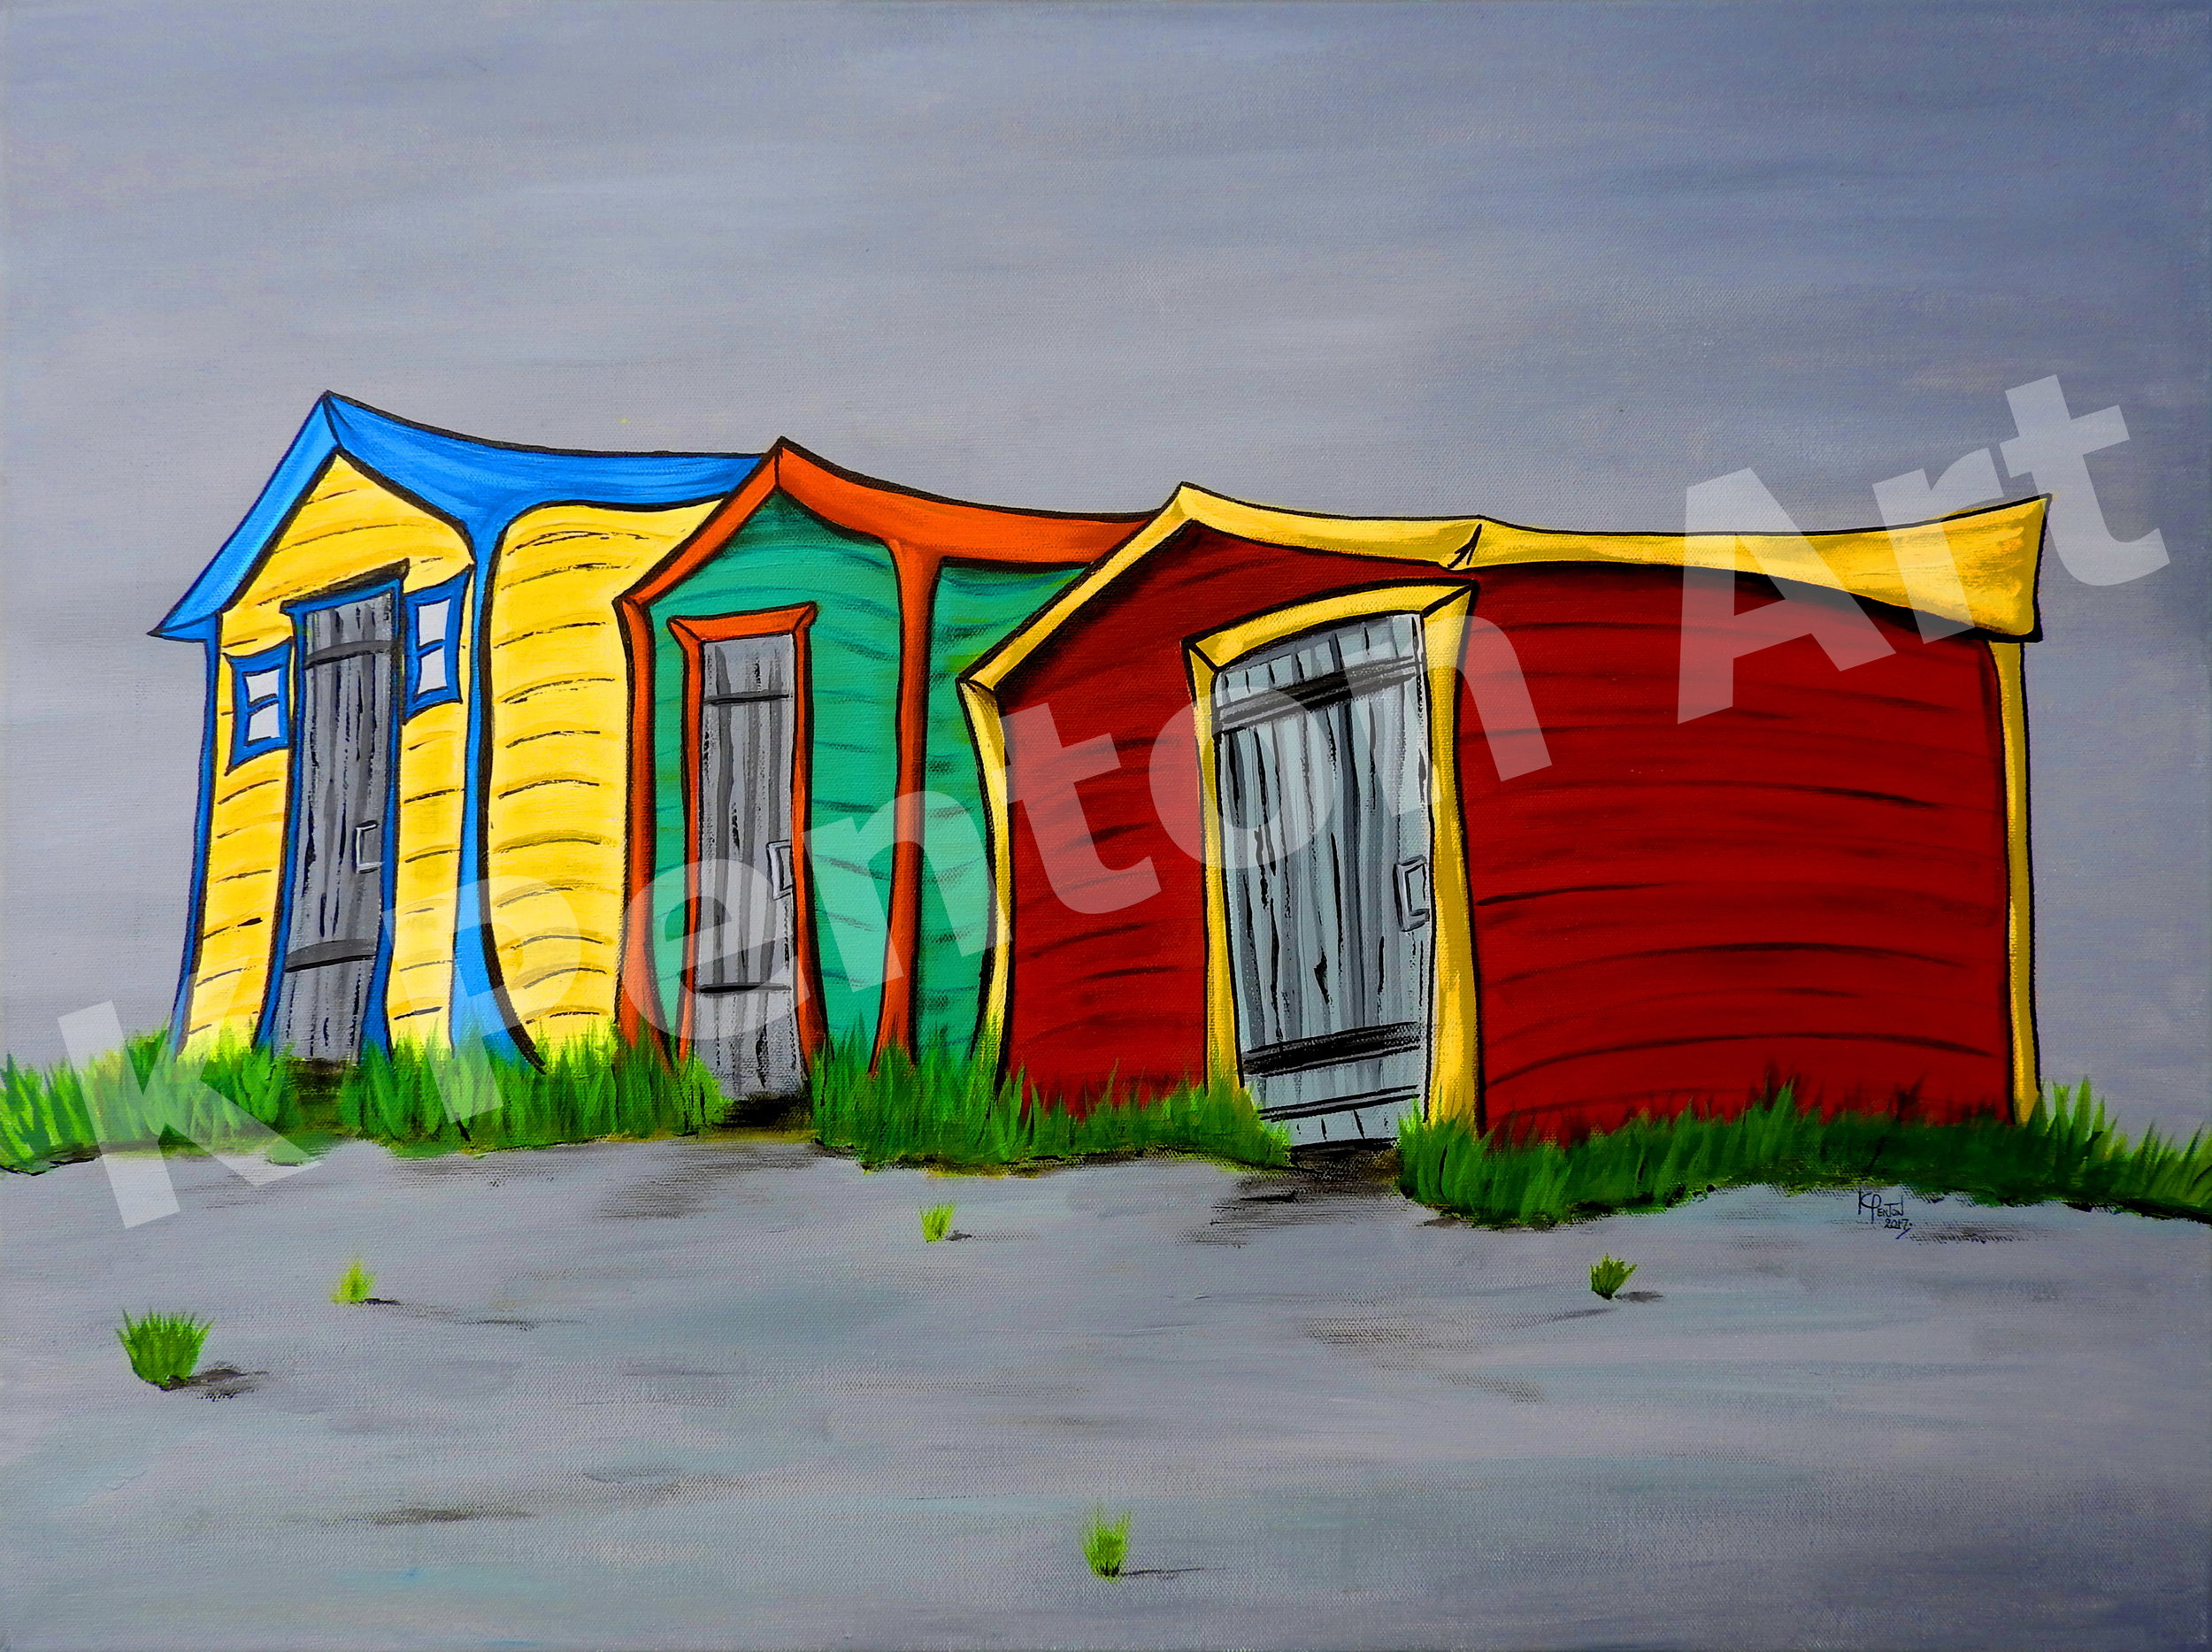 Three Sheds - (Original in Private Collection)